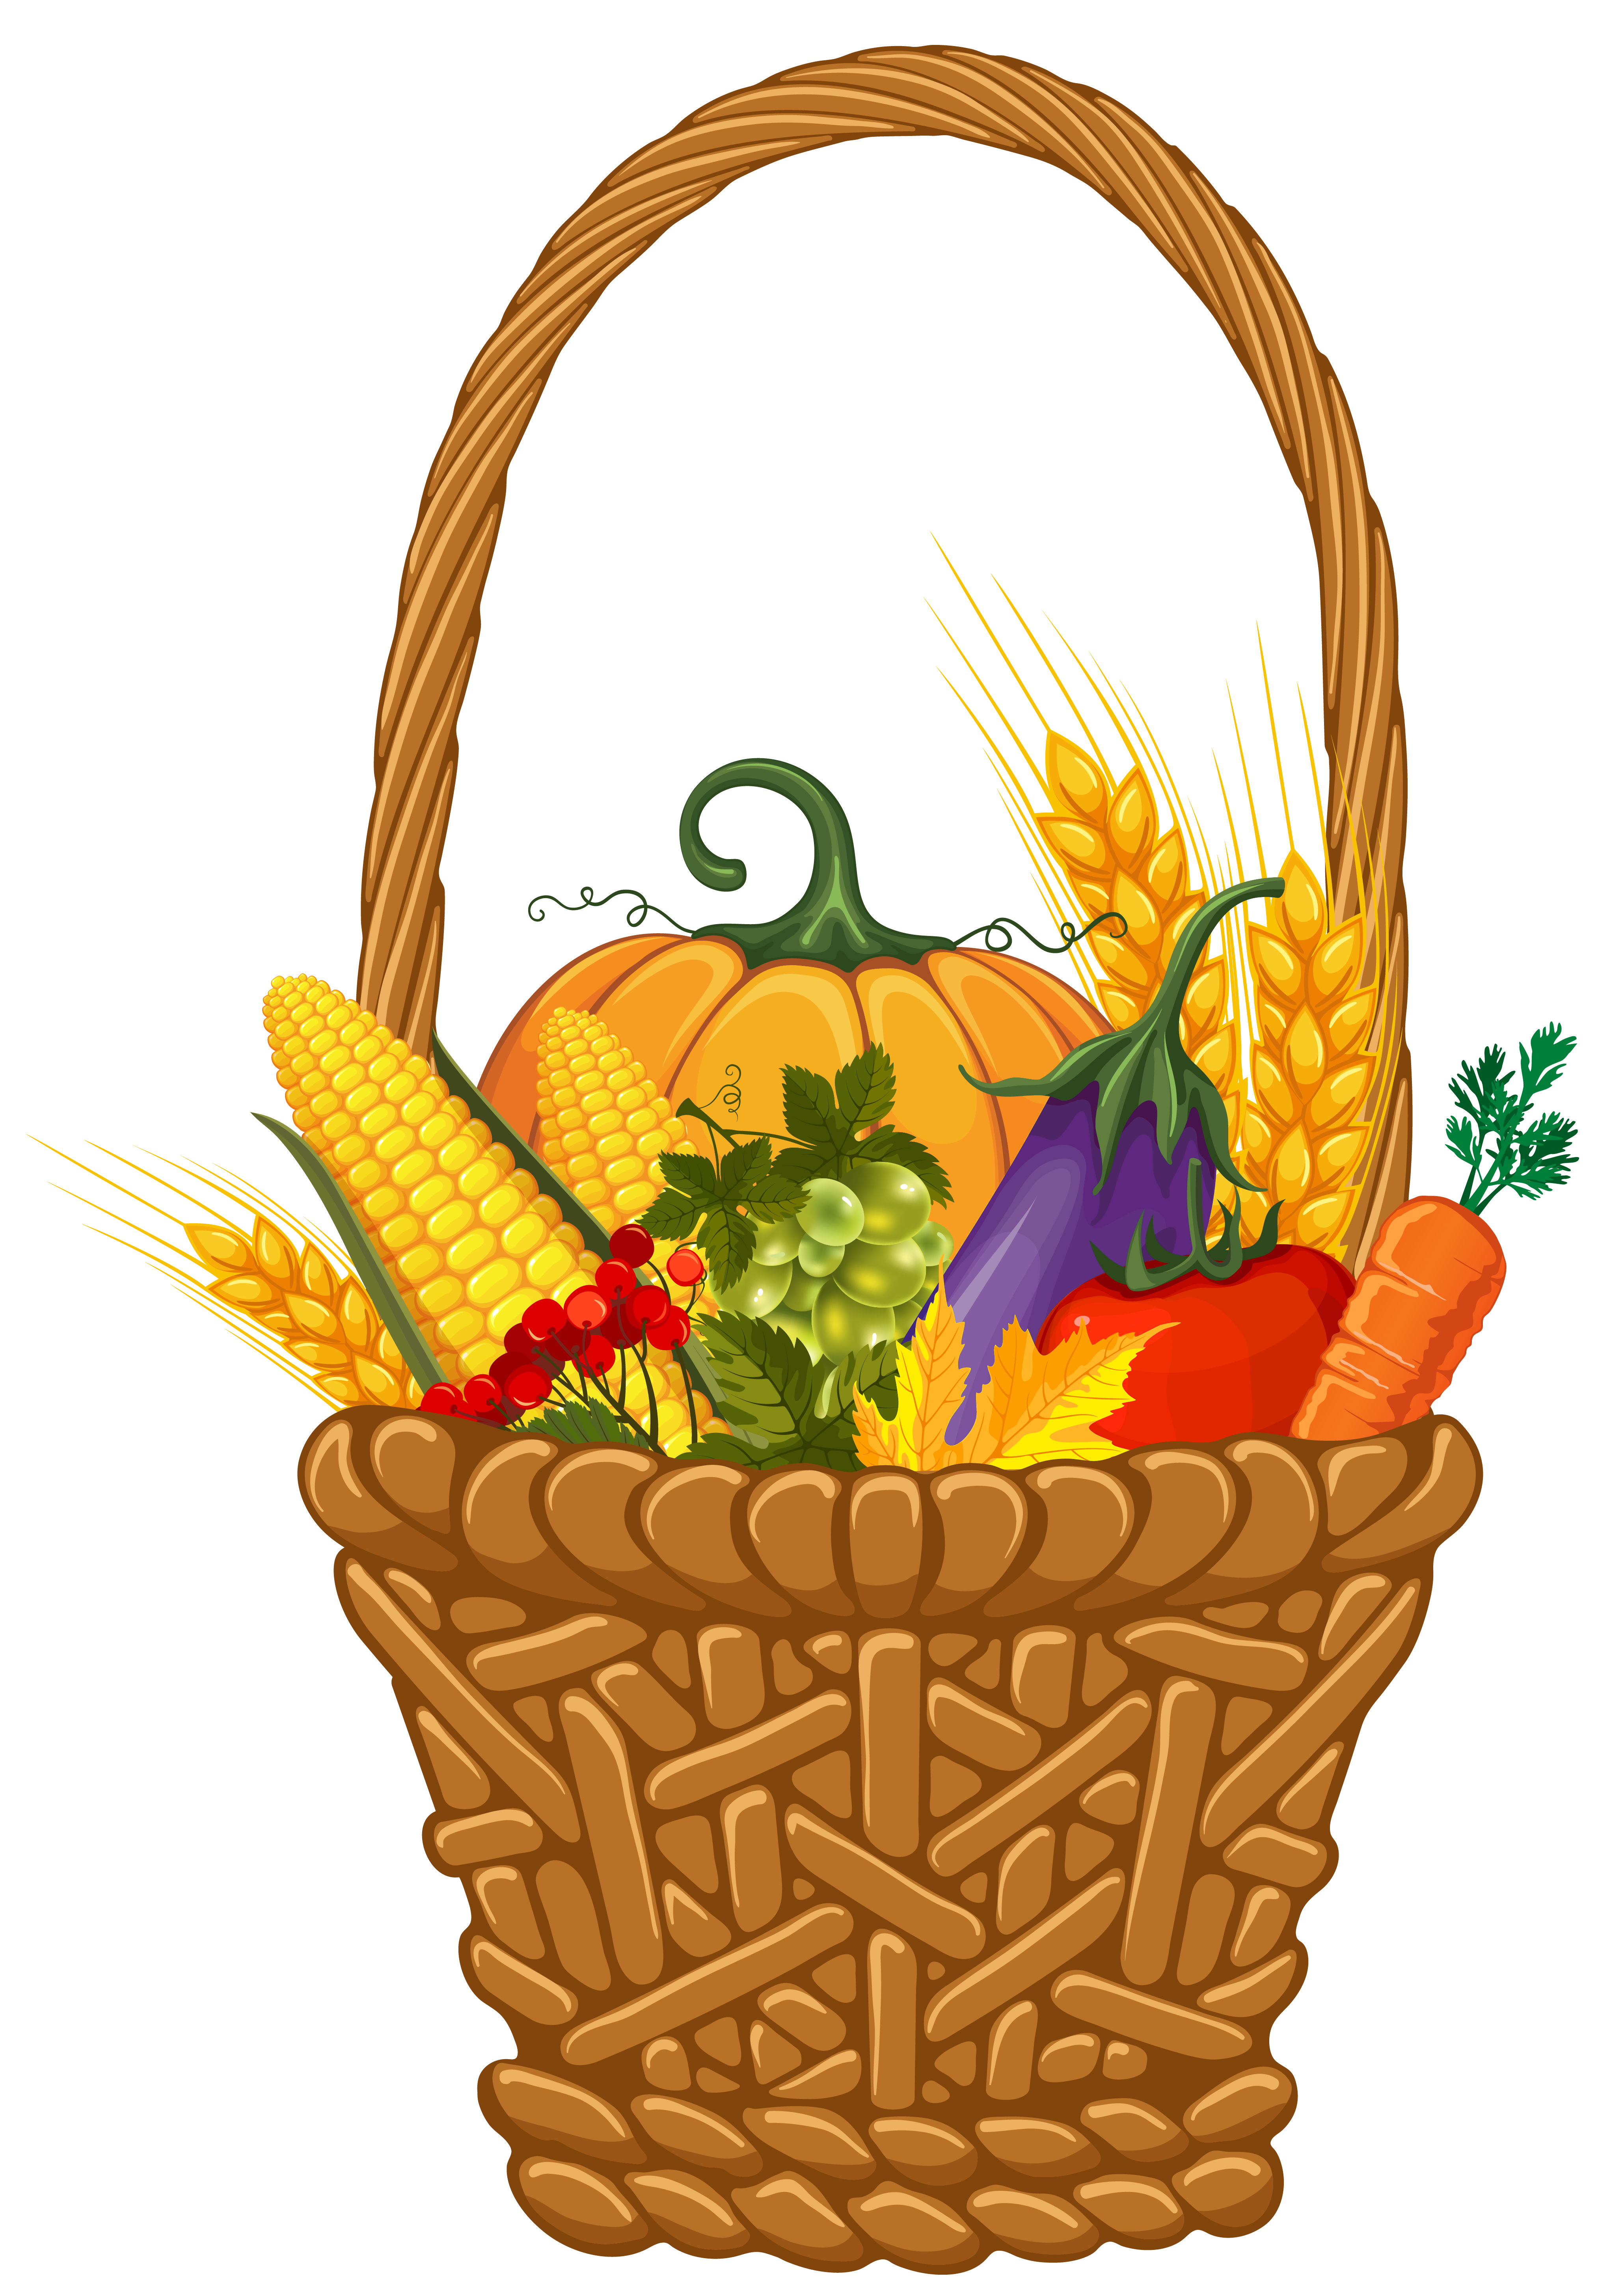 stock Basket clipart bow. Fall harvest png image.